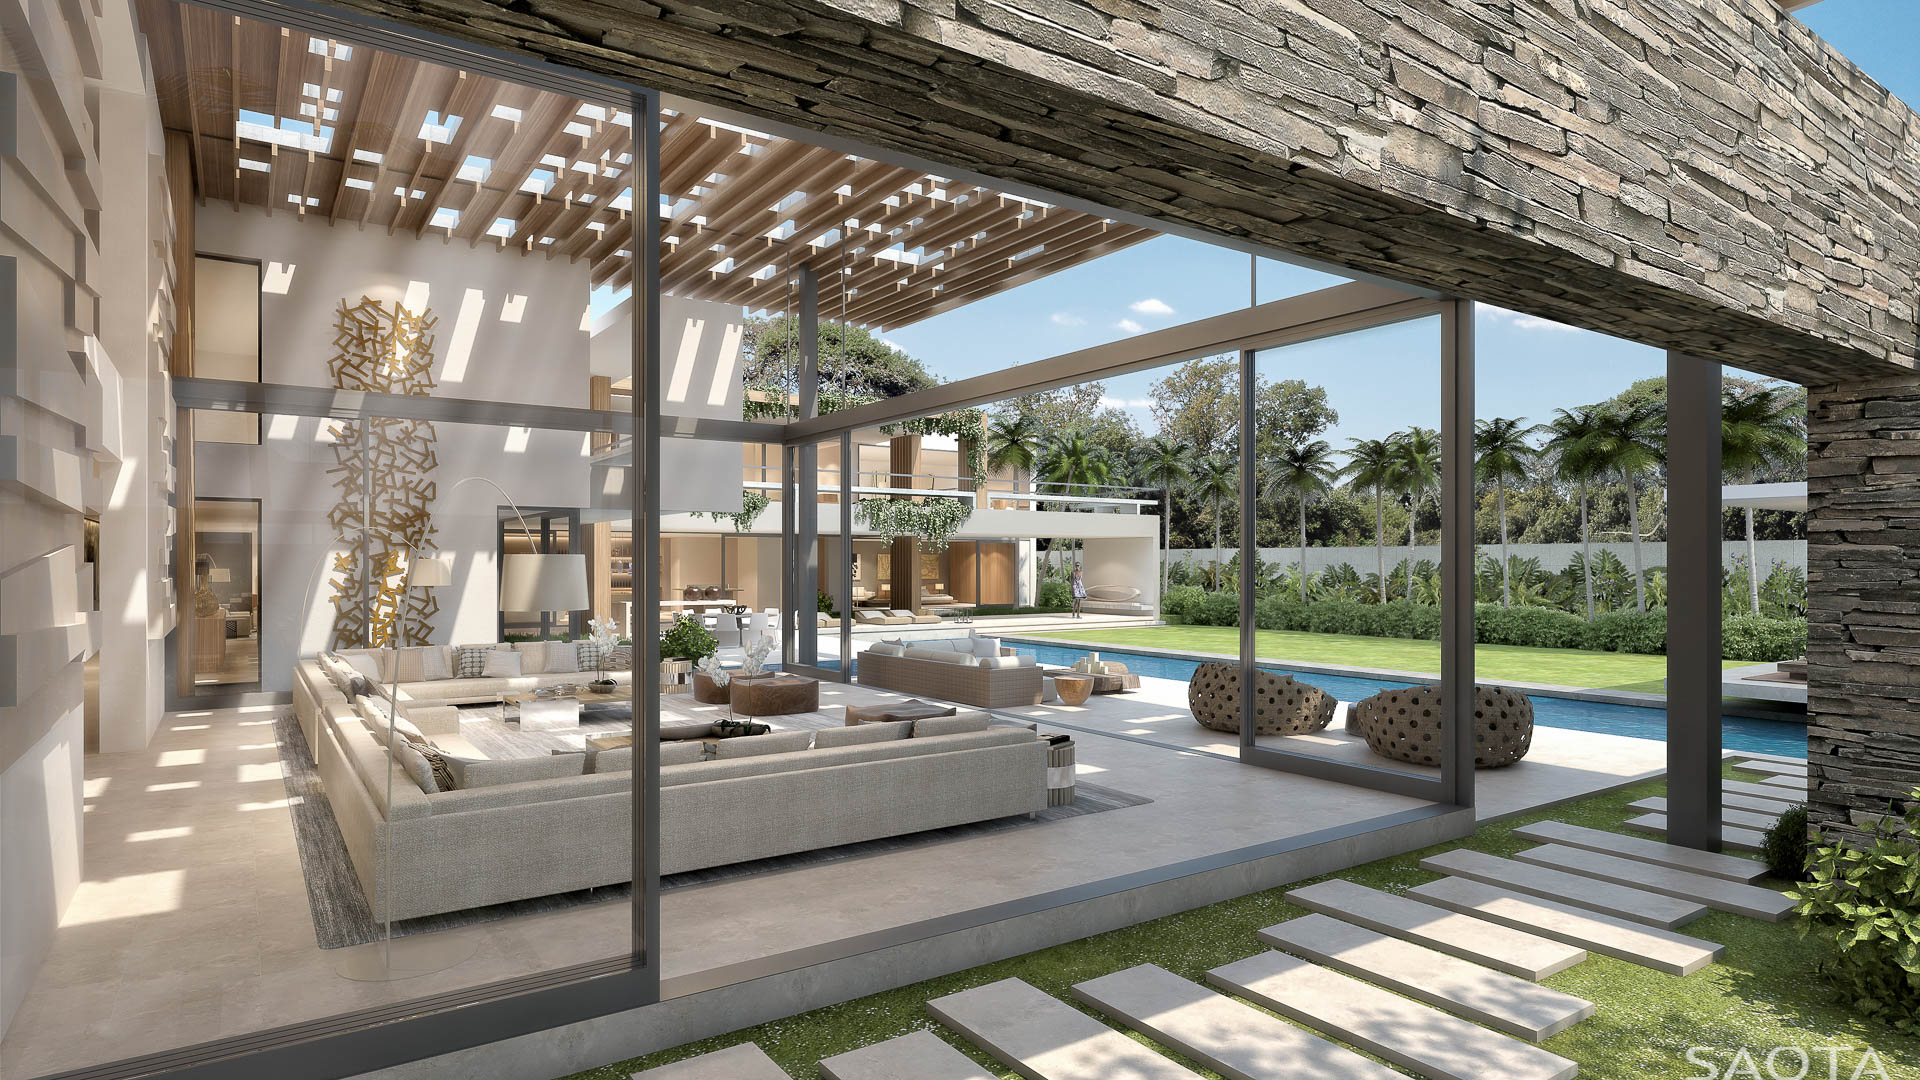 30 yet to be built modern dream homes by saota part 1 - Residence moderne miami dkor interiors ...